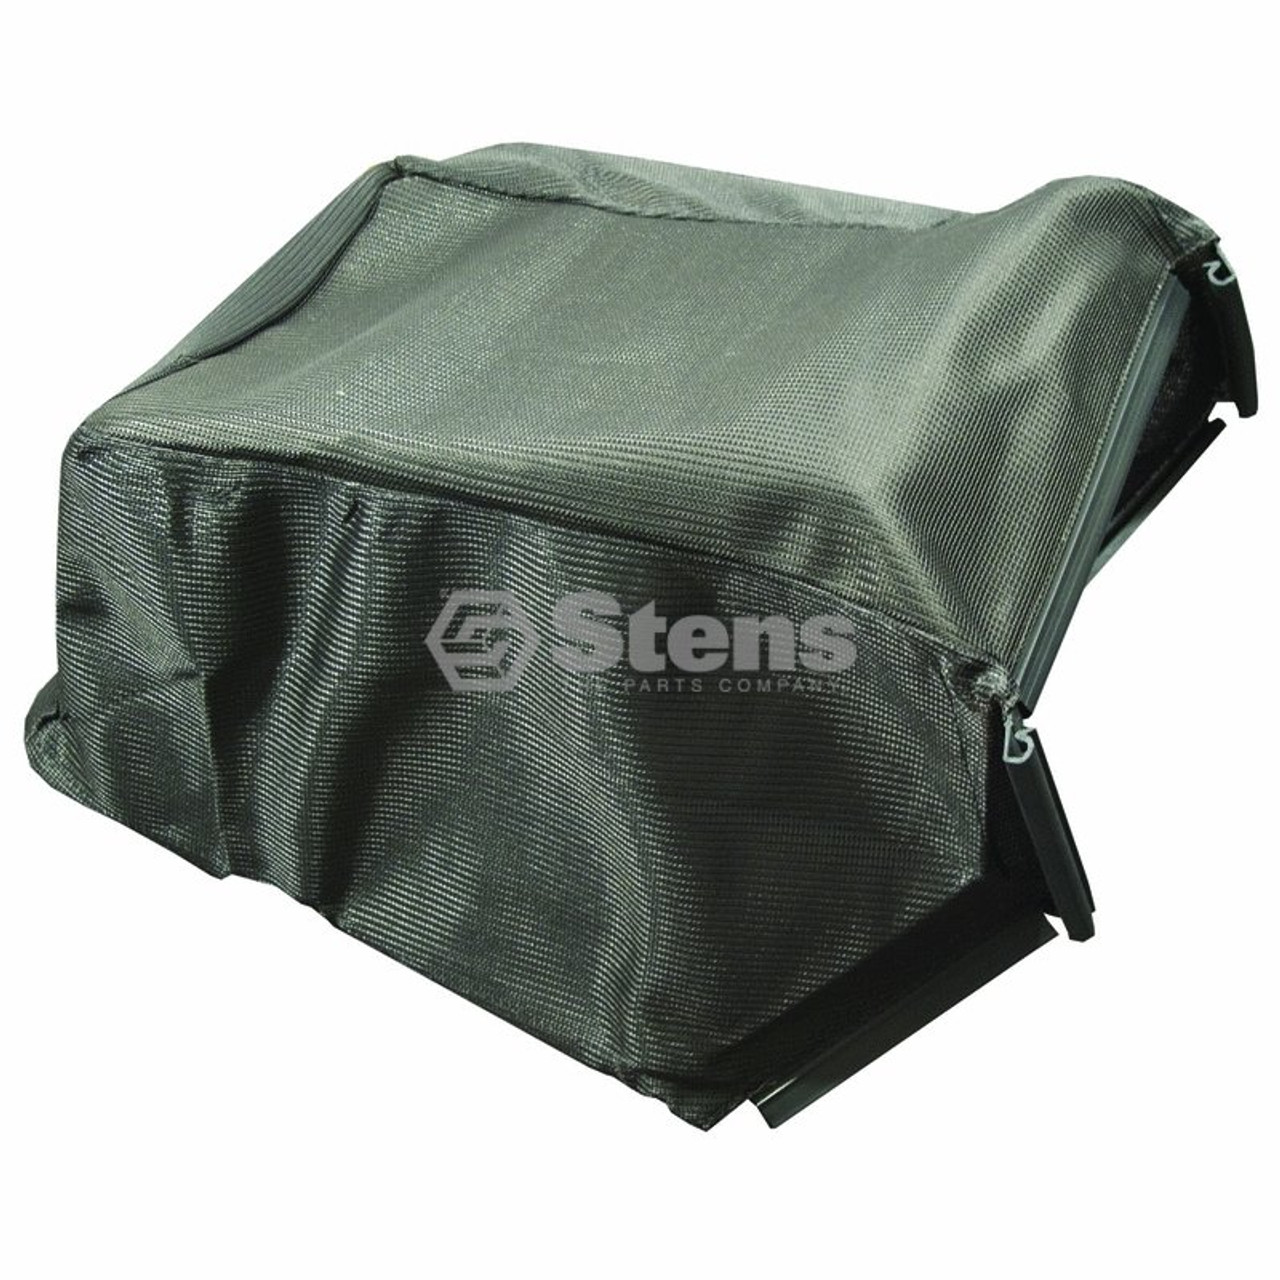 1-2320 365-007 2-2319 Snapper Grass Bag Replaces 1-2157 Mowers ...